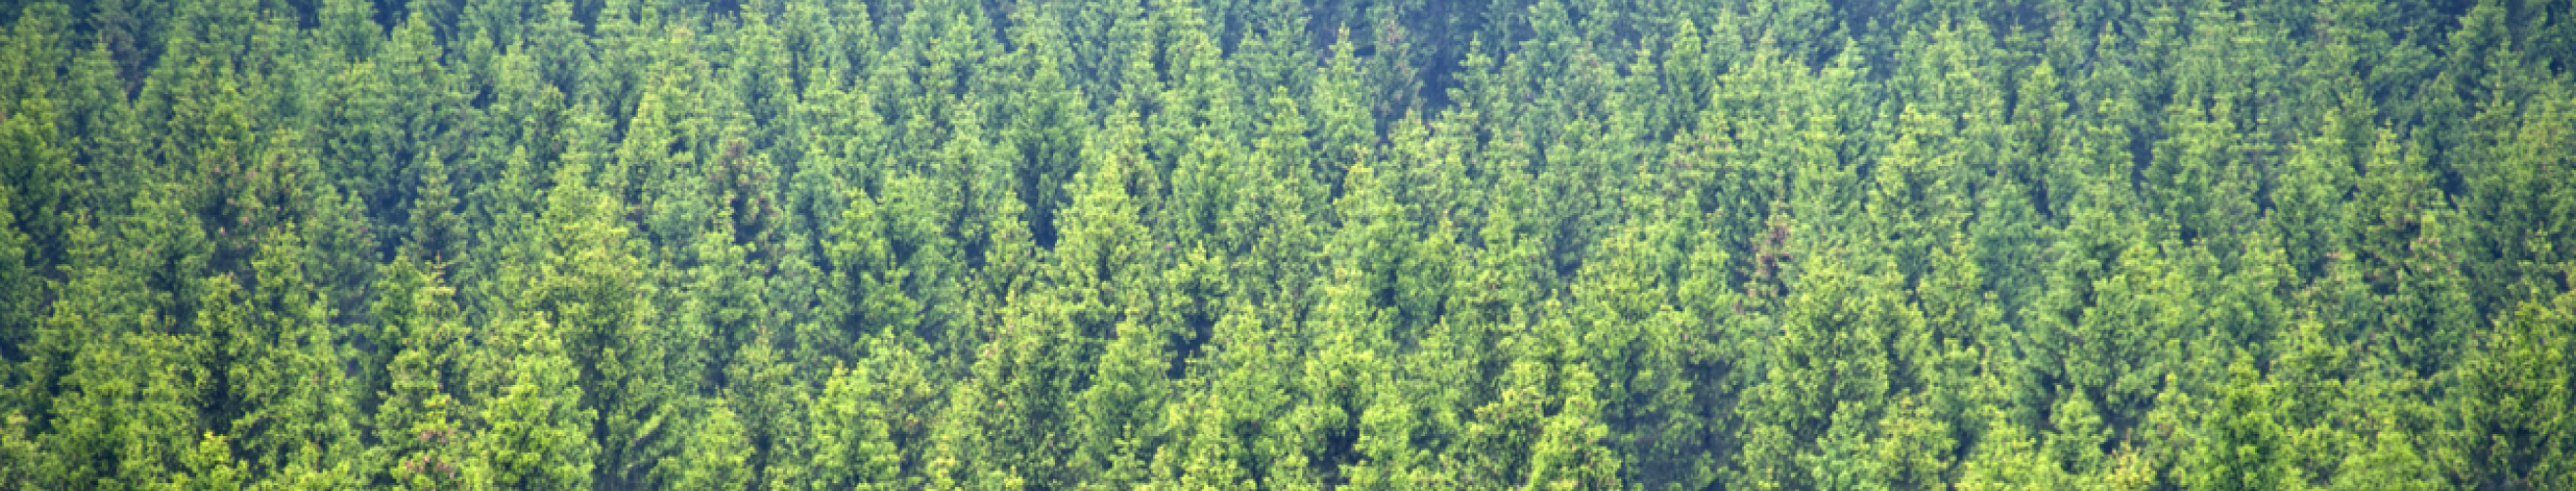 A Rocha_Banner_misc 2_pine forest